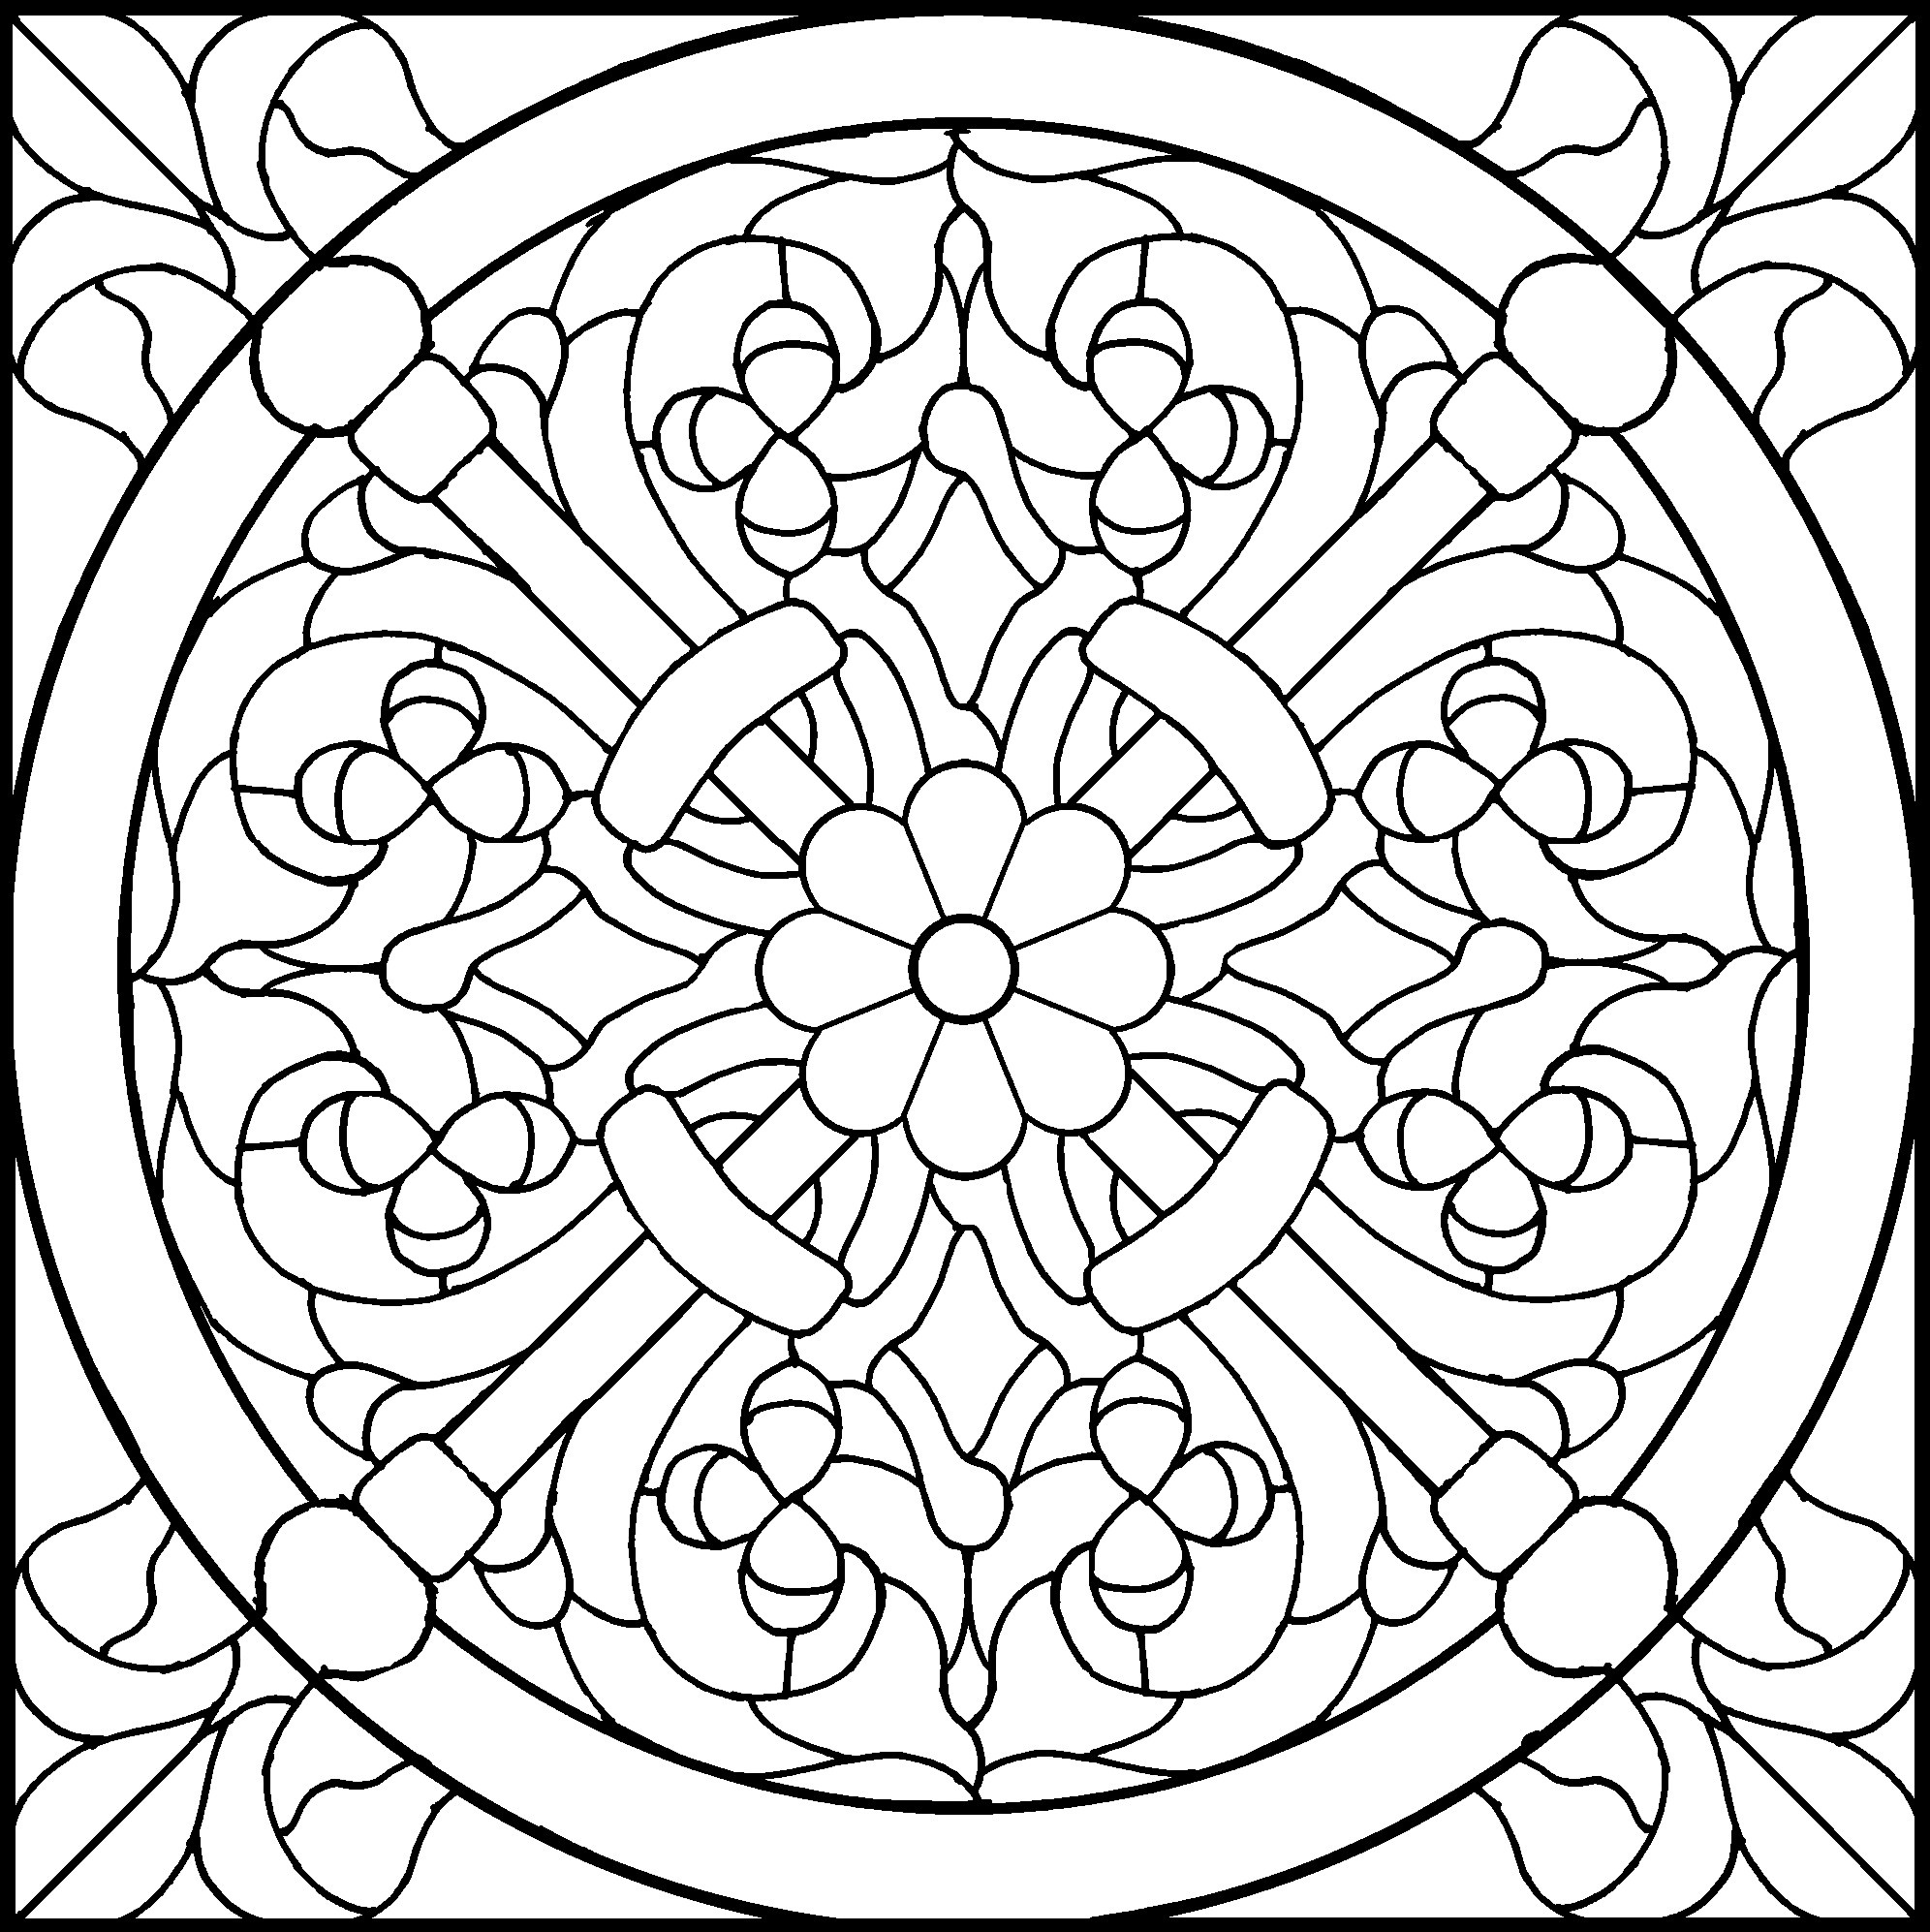 45 Simple Stained Glass Patterns | Guide Patterns - Free Printable Religious Stained Glass Patterns